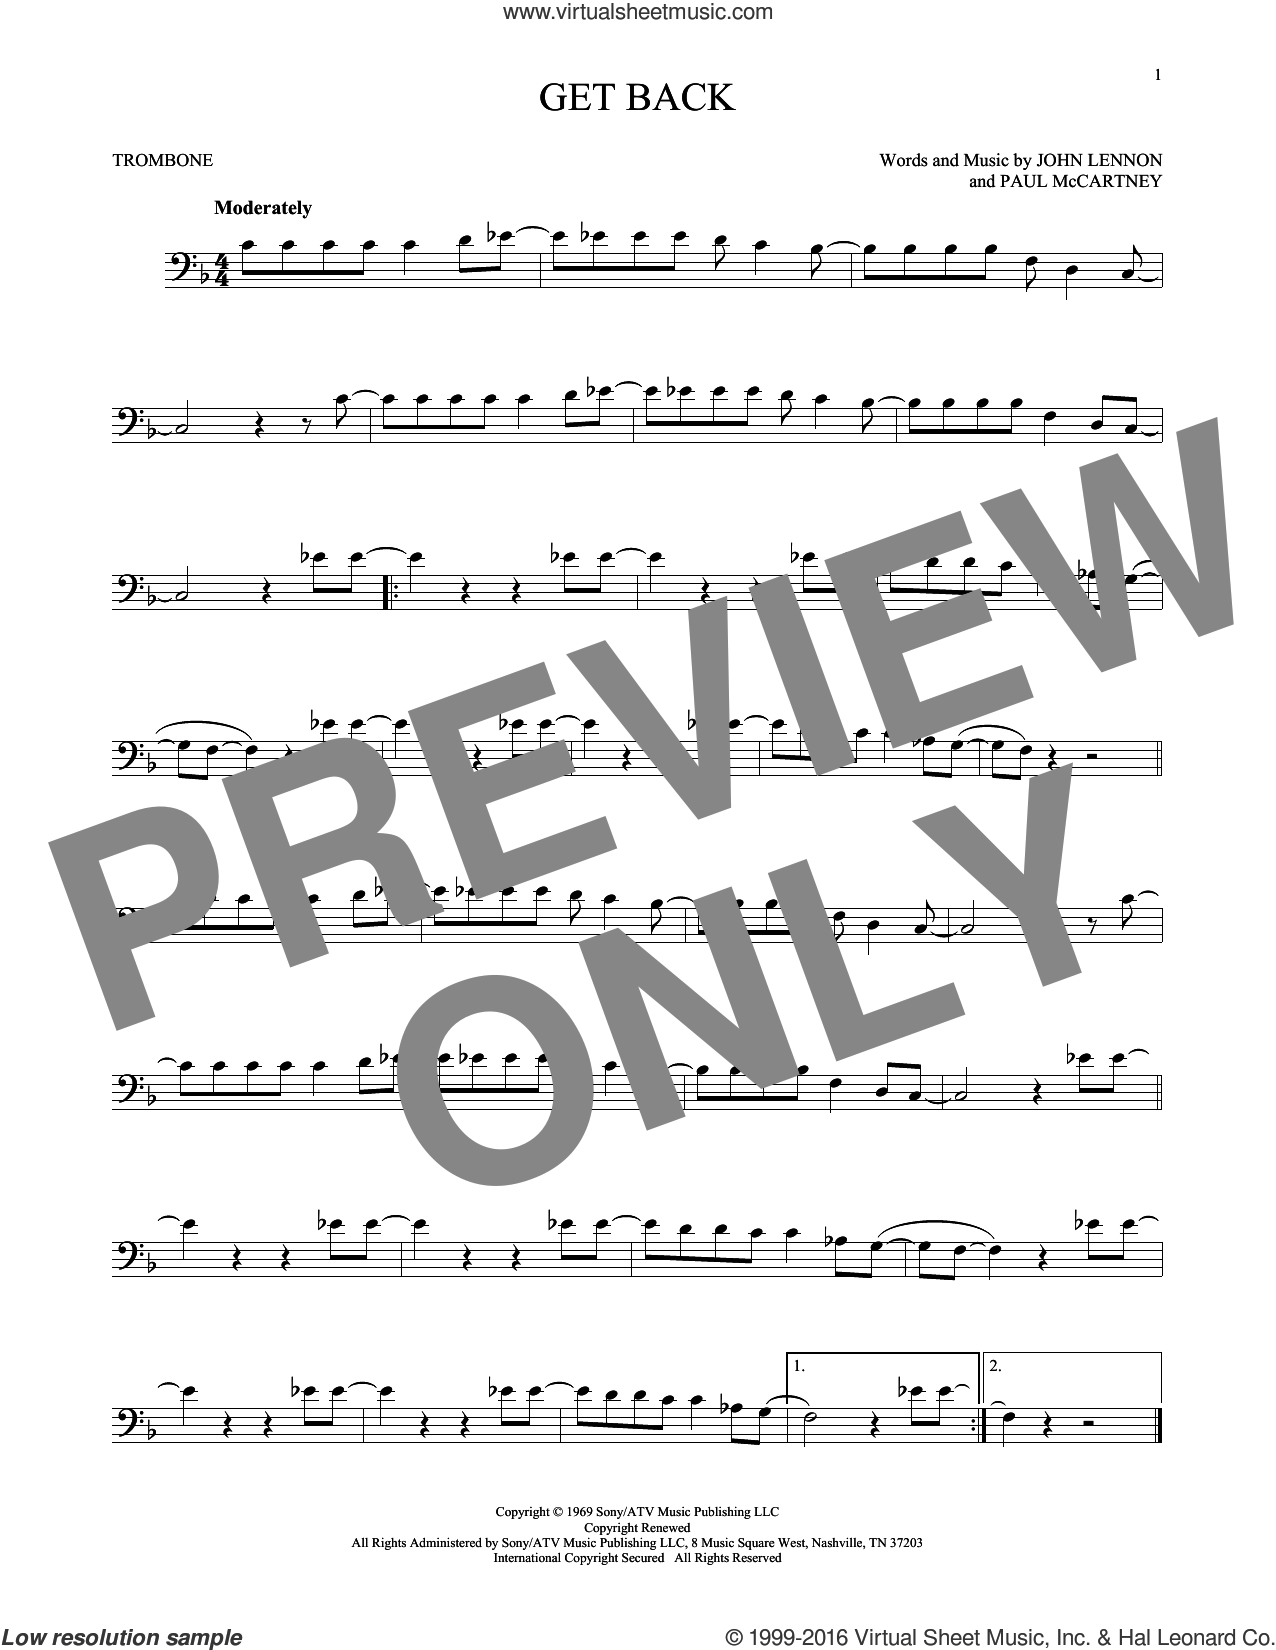 Get Back sheet music for trombone solo by Paul McCartney, The Beatles and John Lennon. Score Image Preview.